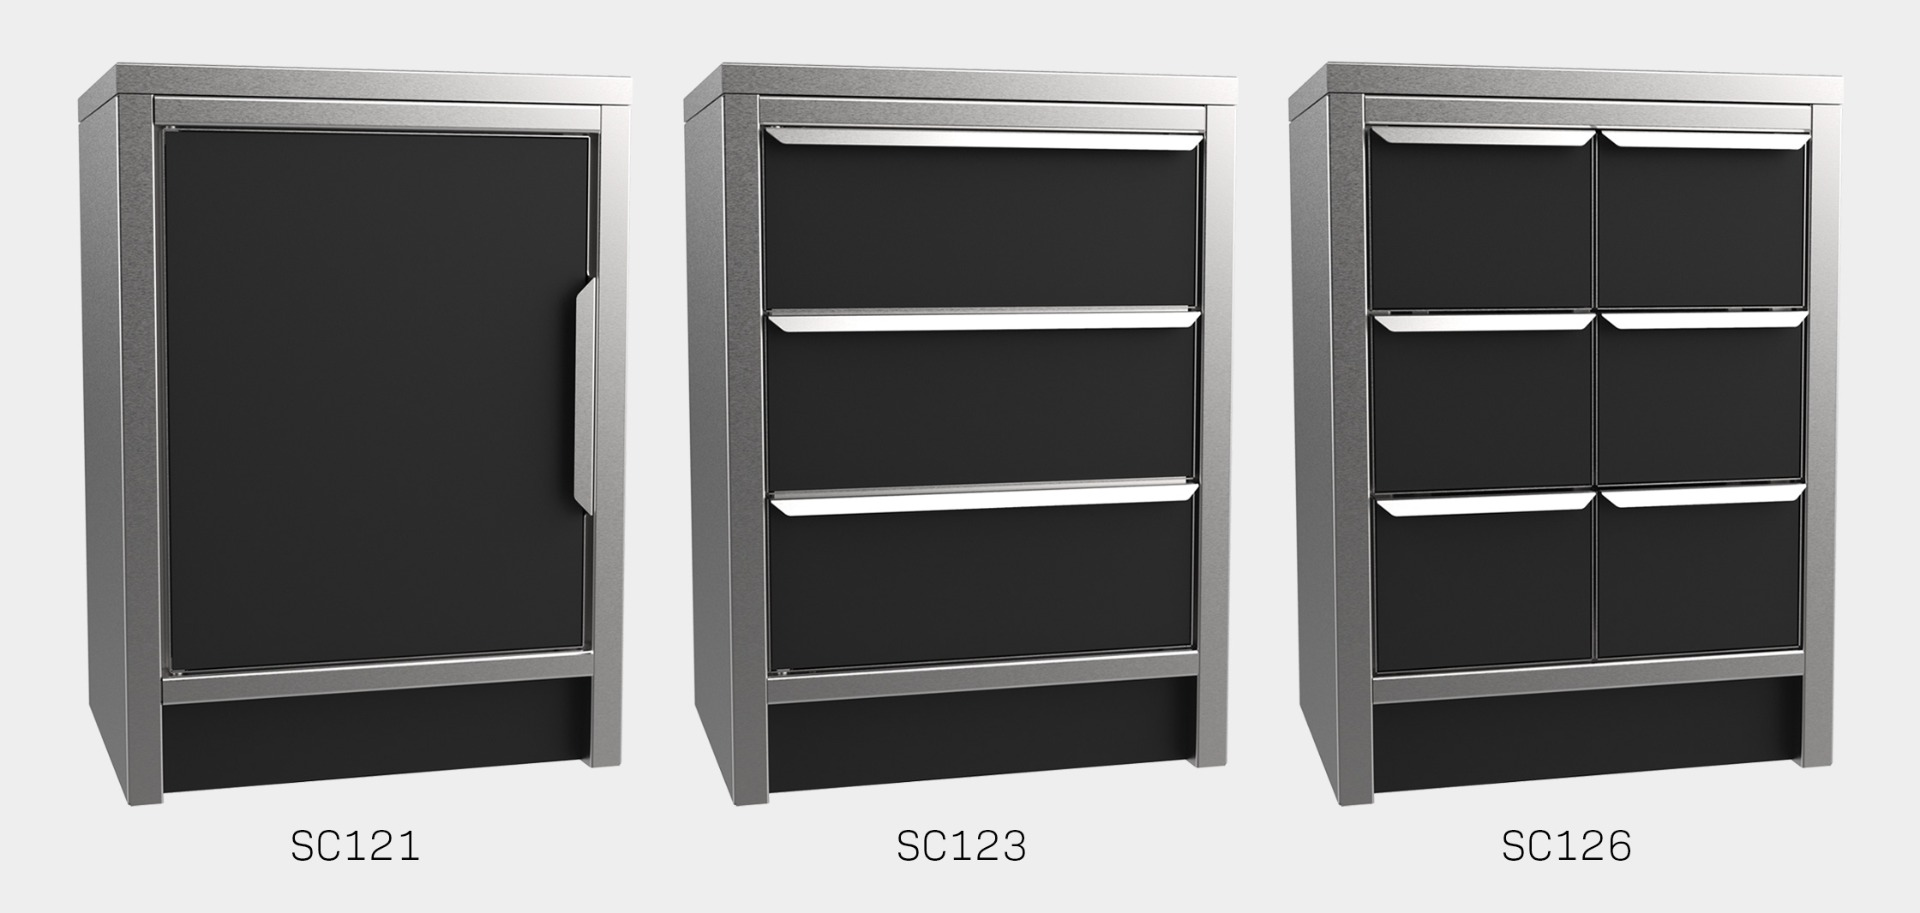 SC12 Lead lined cabinets